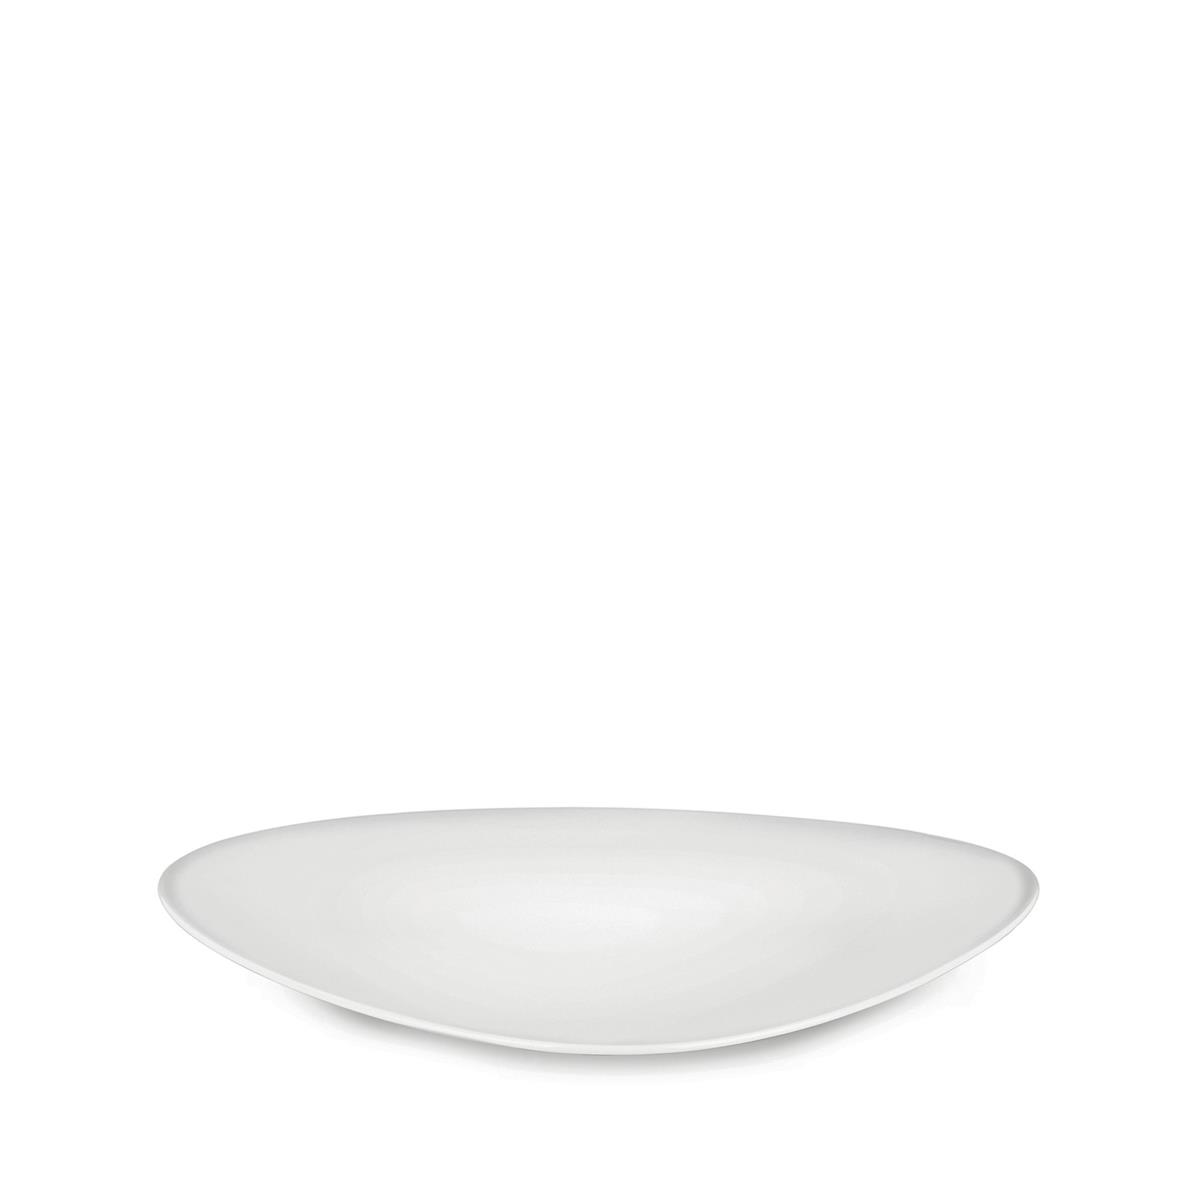 Alessi-Colombina collection Serving plate in white porcelain